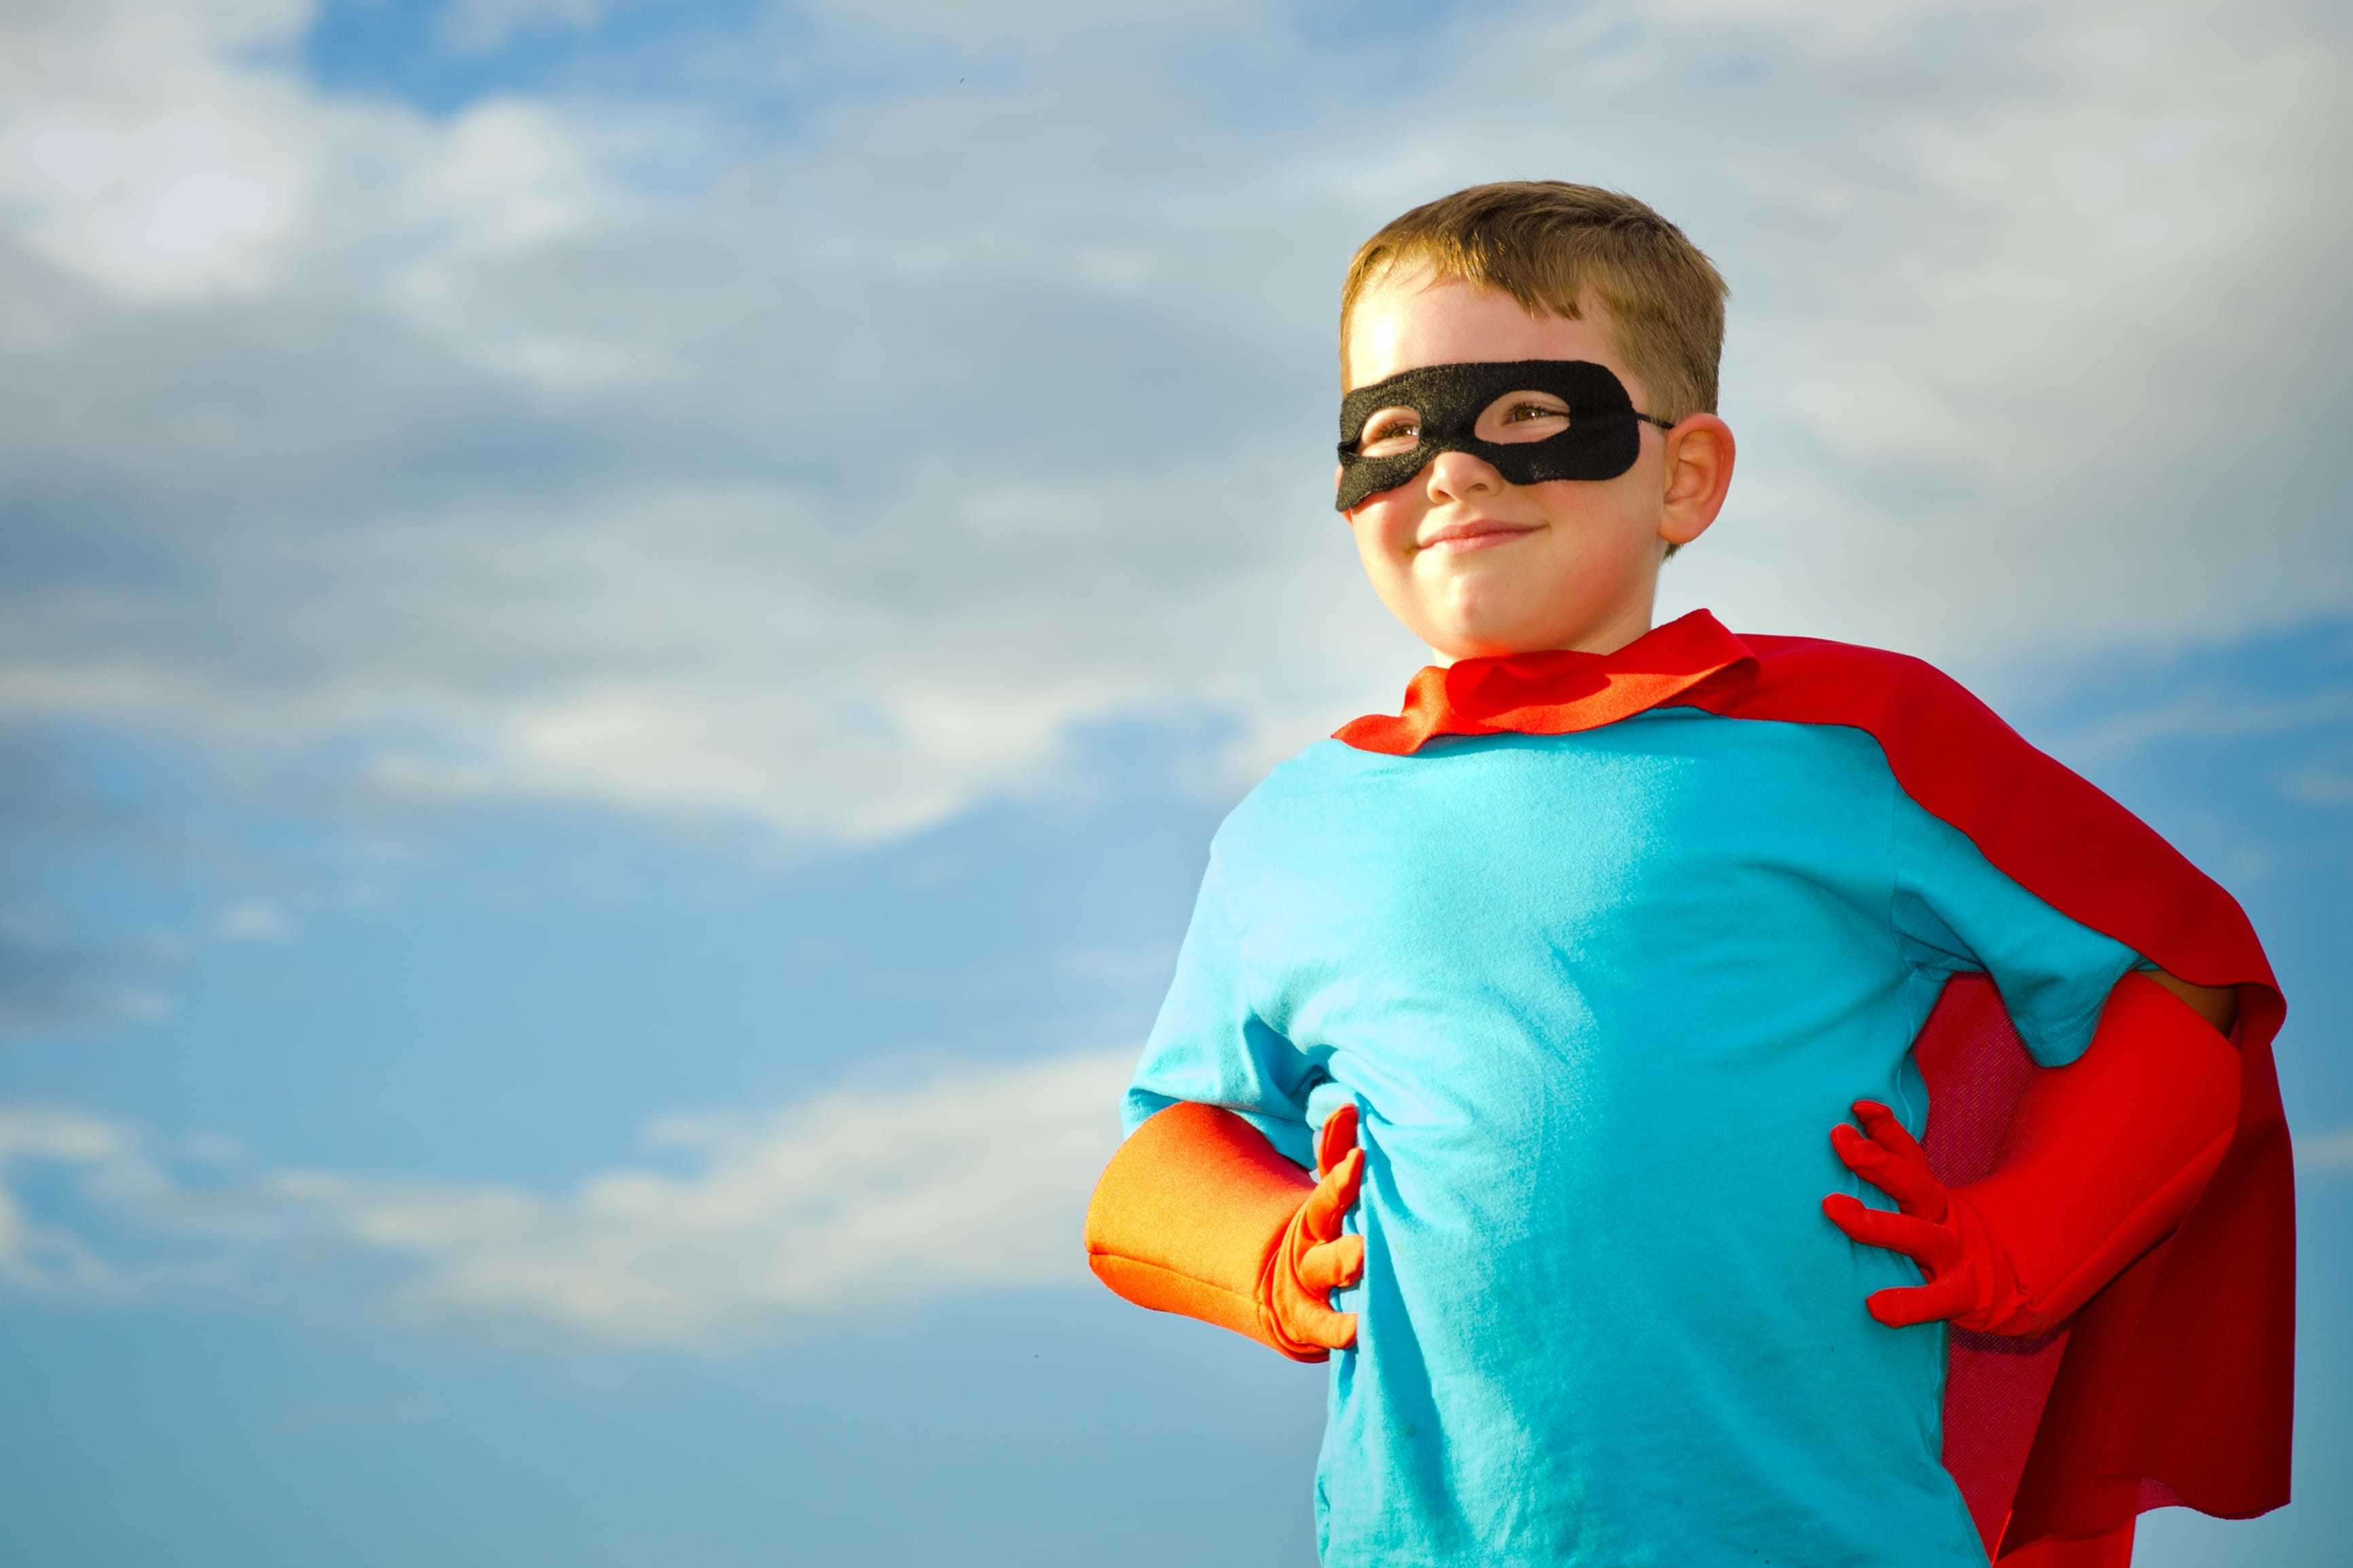 http://www.dreamstime.com/royalty-free-stock-photography-child-pretending-to-be-superhero-image25272827